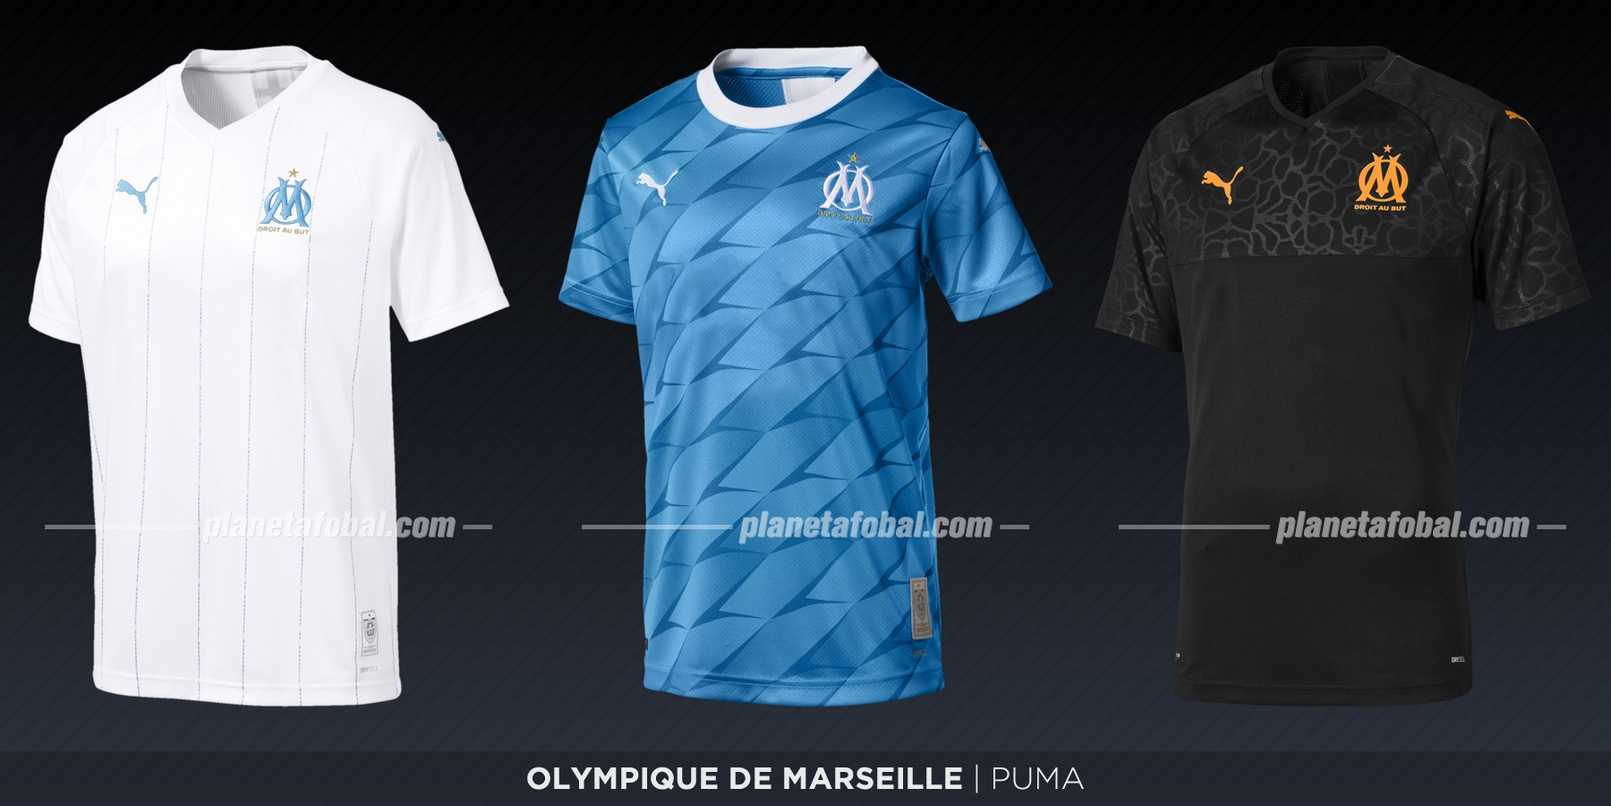 Olympique de Marsella (Puma) | Camisetas de la Ligue 1 2019-2020